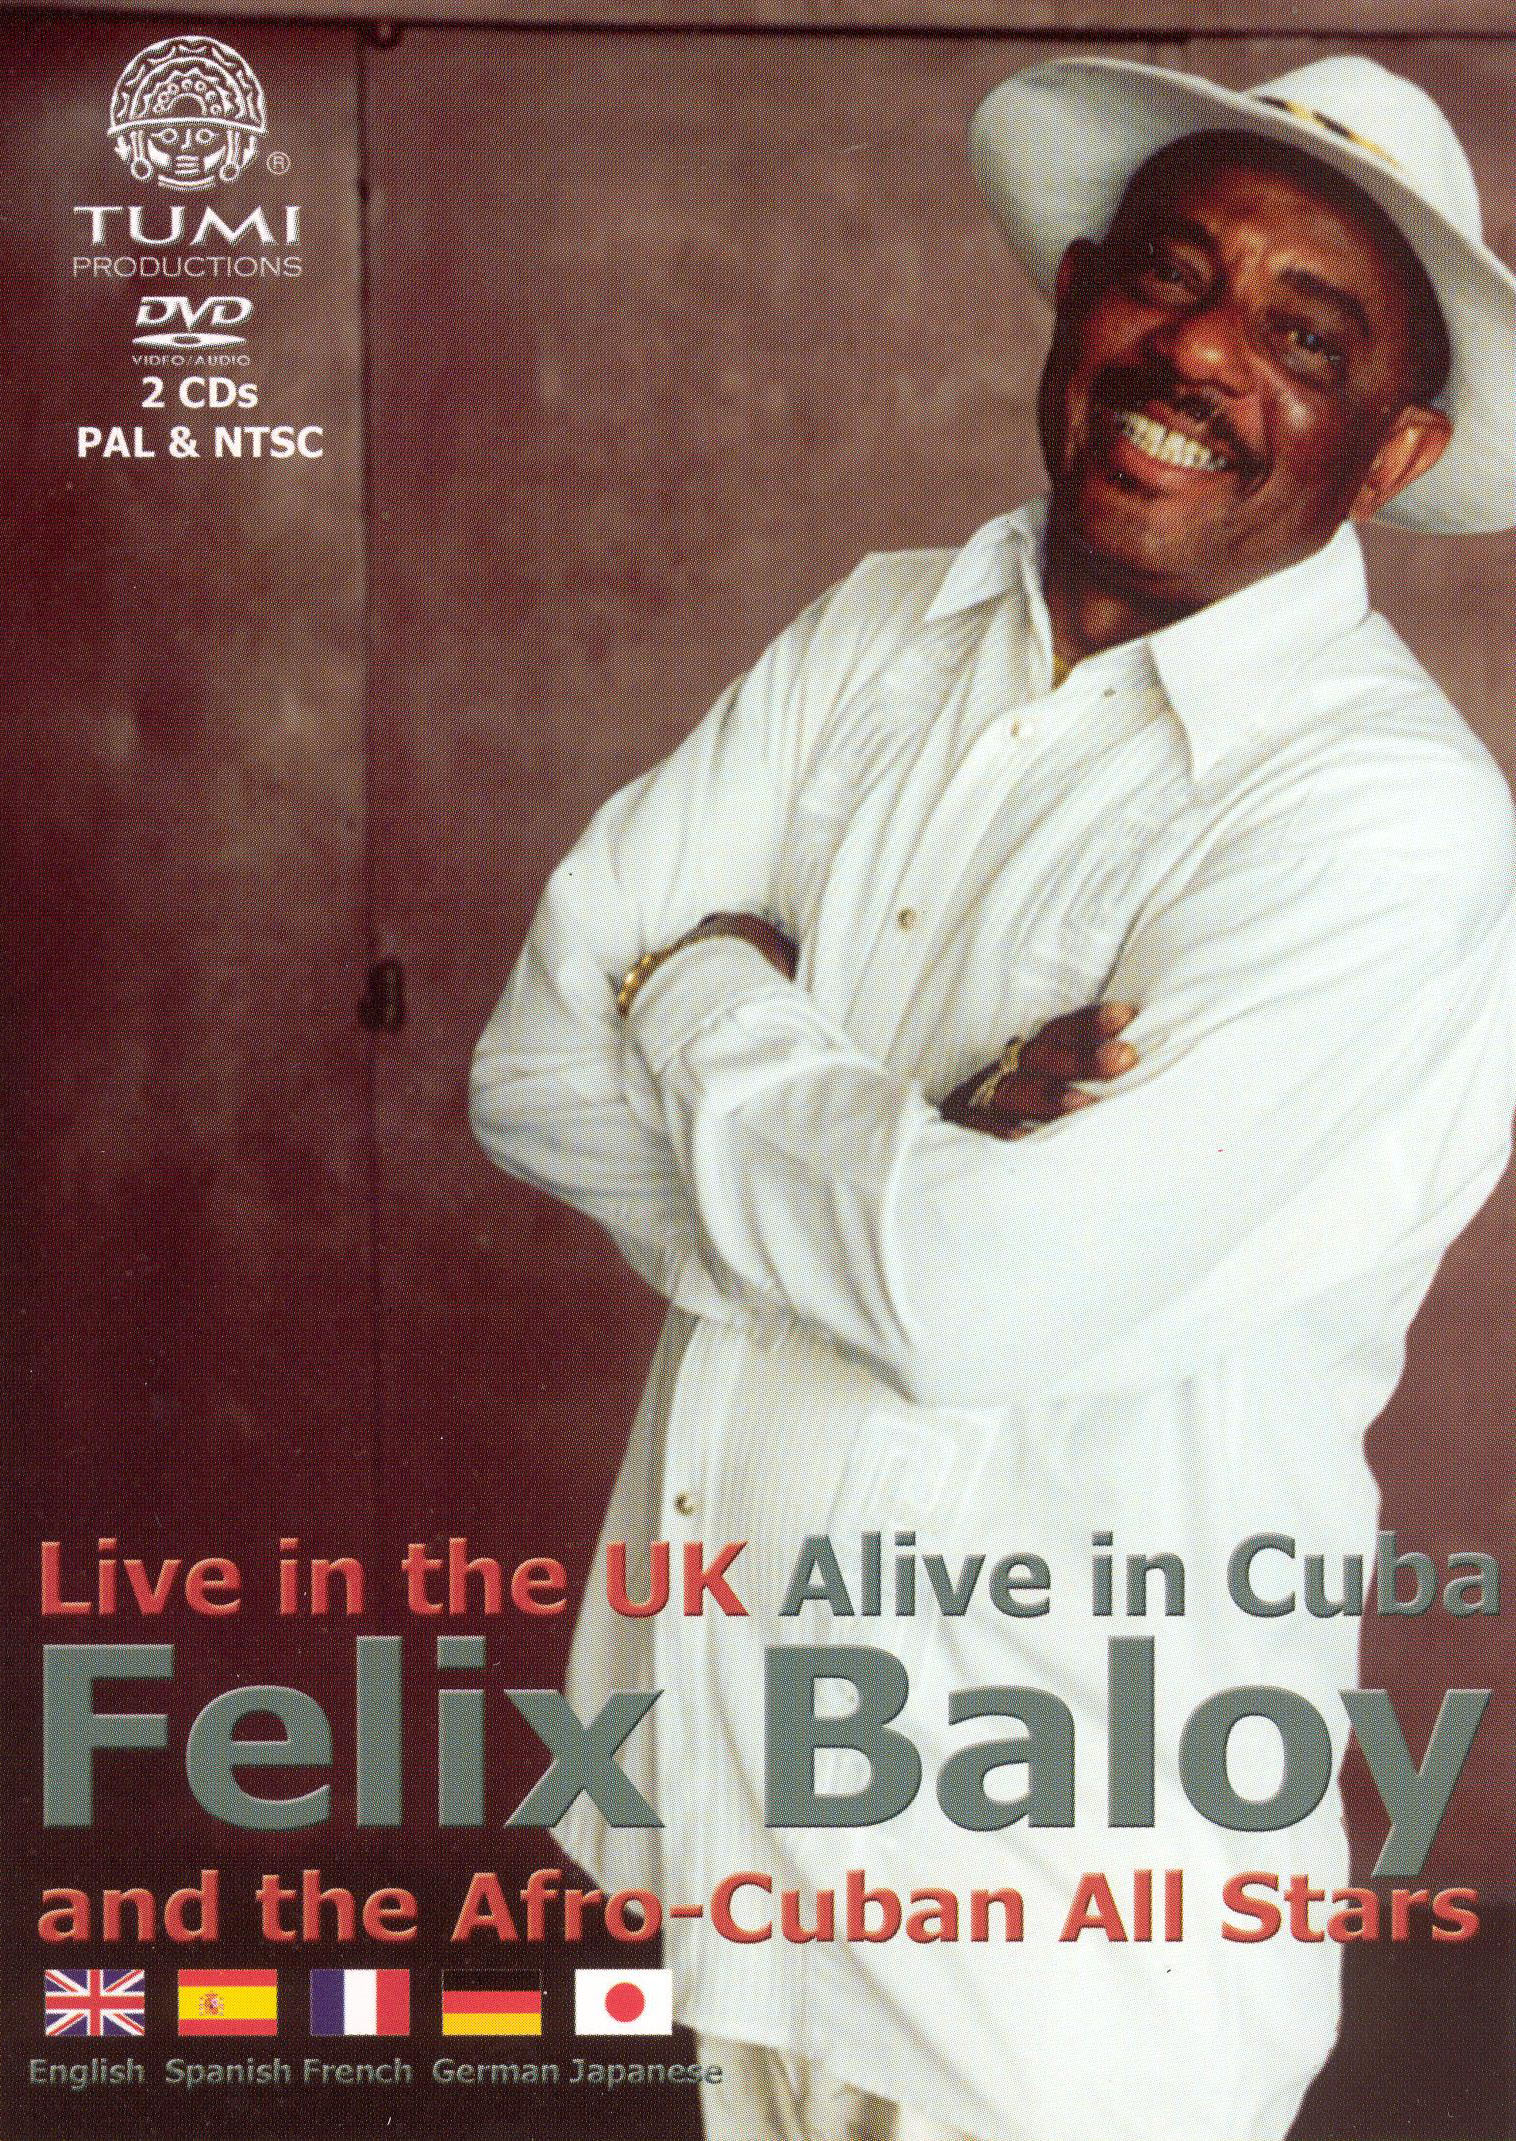 Felix Baloy & the Afro-Cuban All Stars: Live in the UK Alive in Cuba